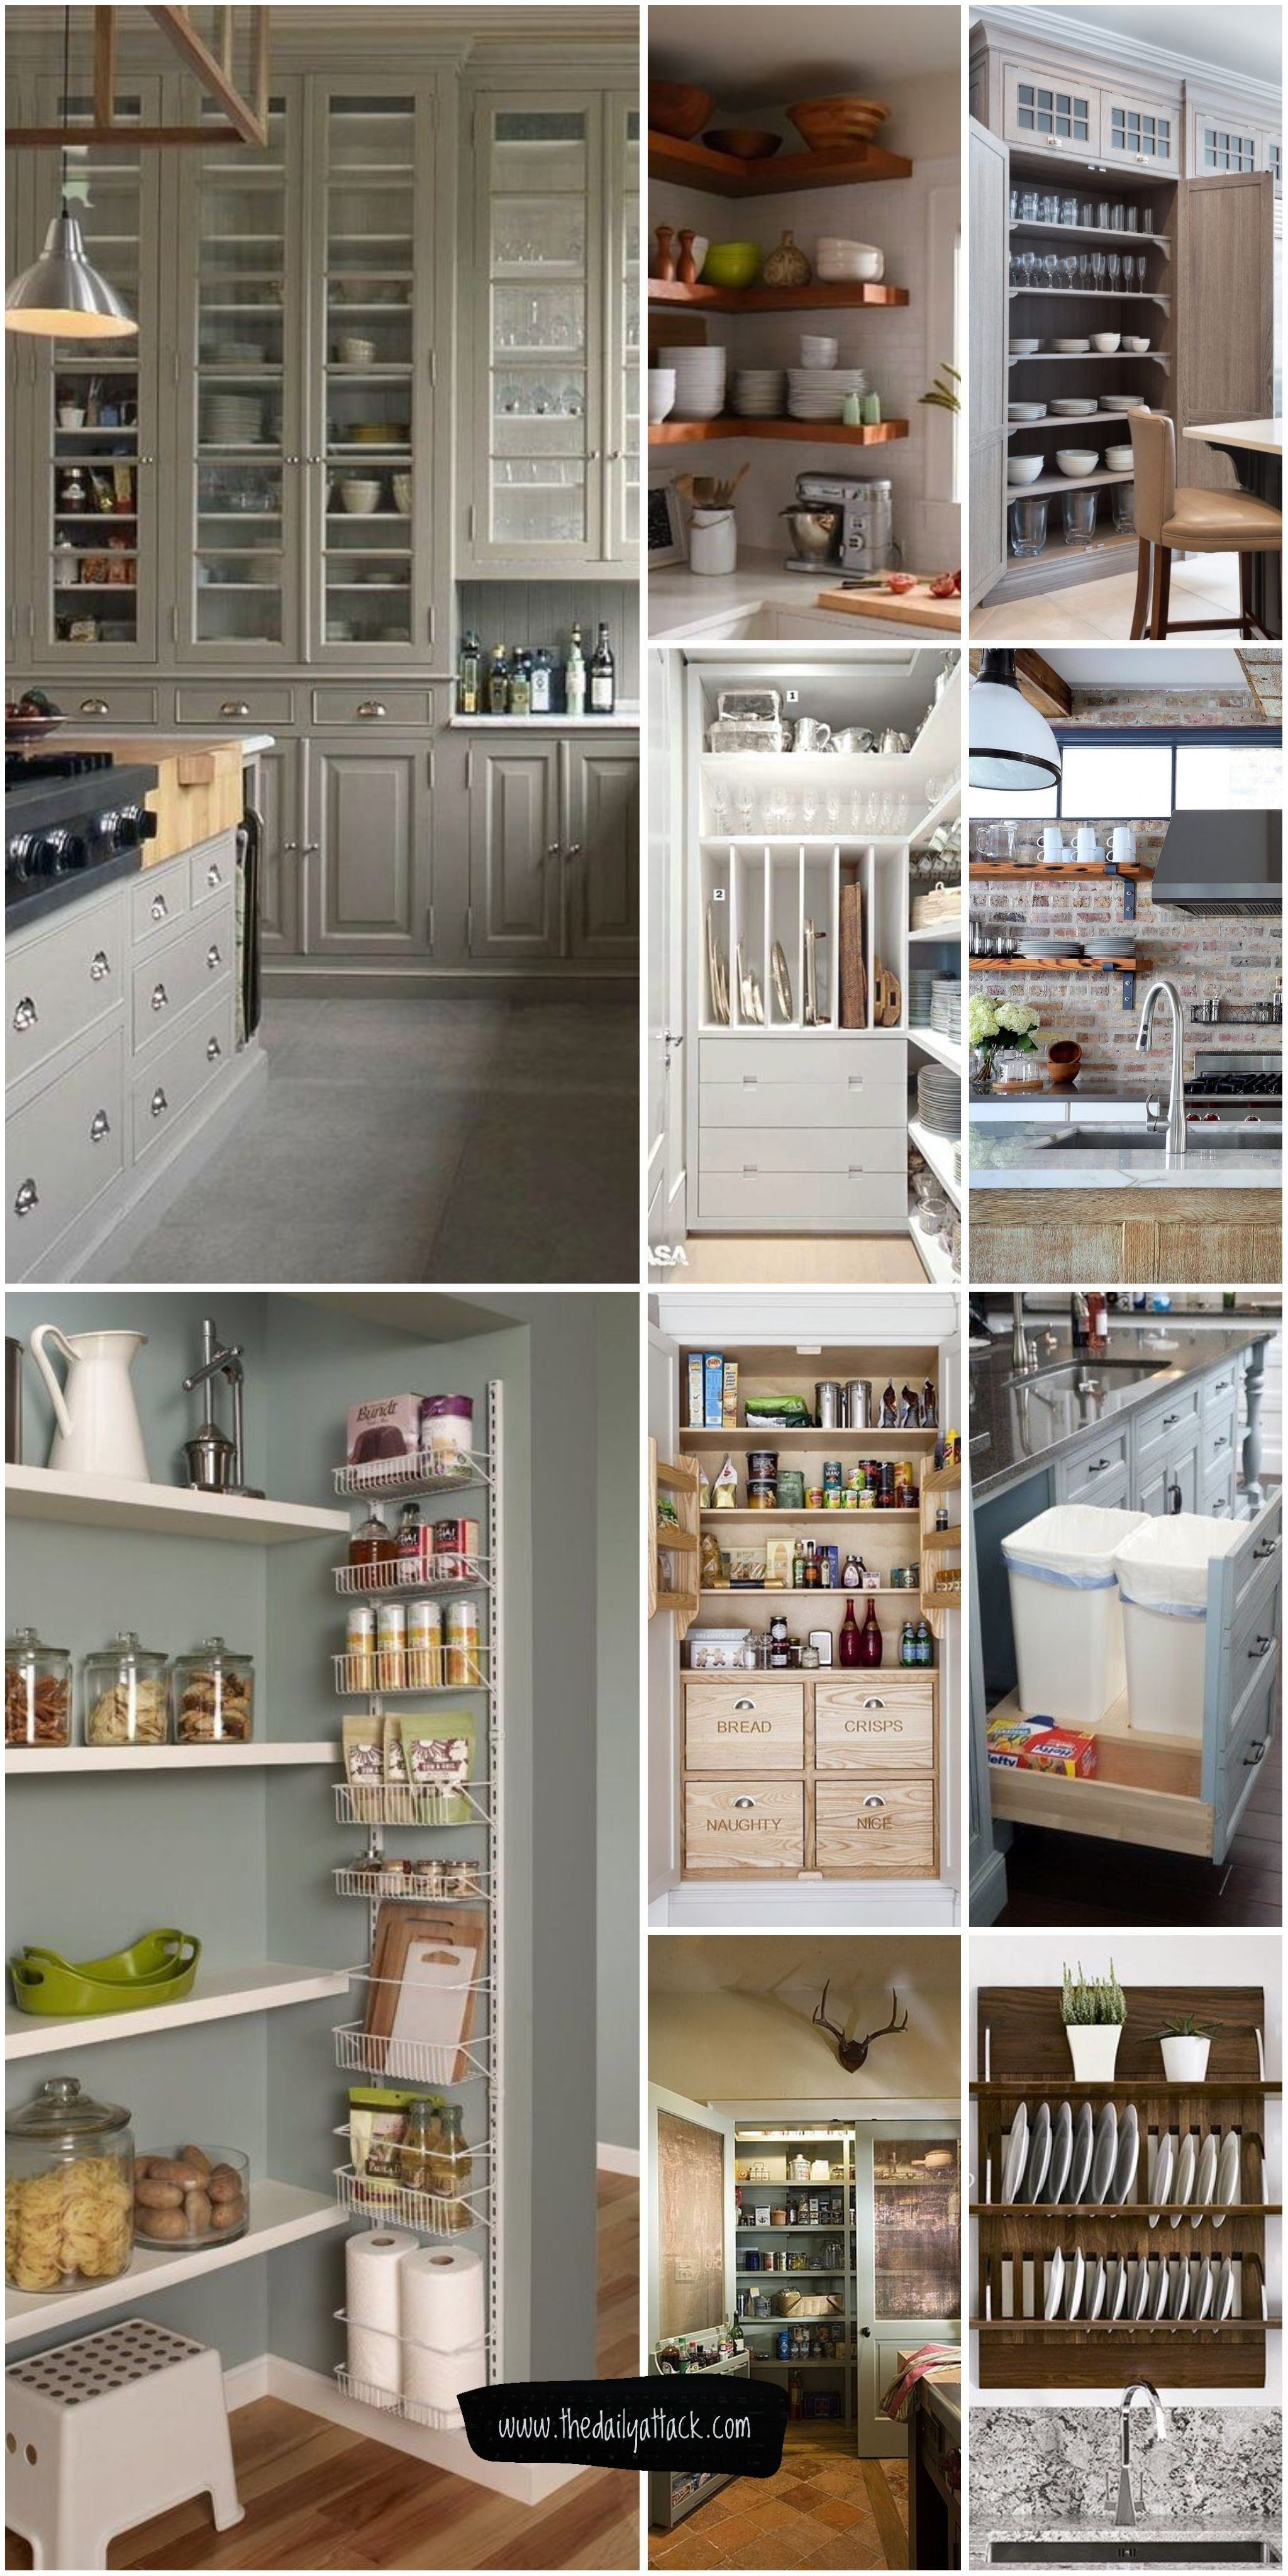 Small Kitchen Cabinet Ideas Http Lahuhome Com Small Kitchen Cabinet Ideas The Small Kit Small Kitchen Storage Galley Kitchen Storage Kitchen Design Small